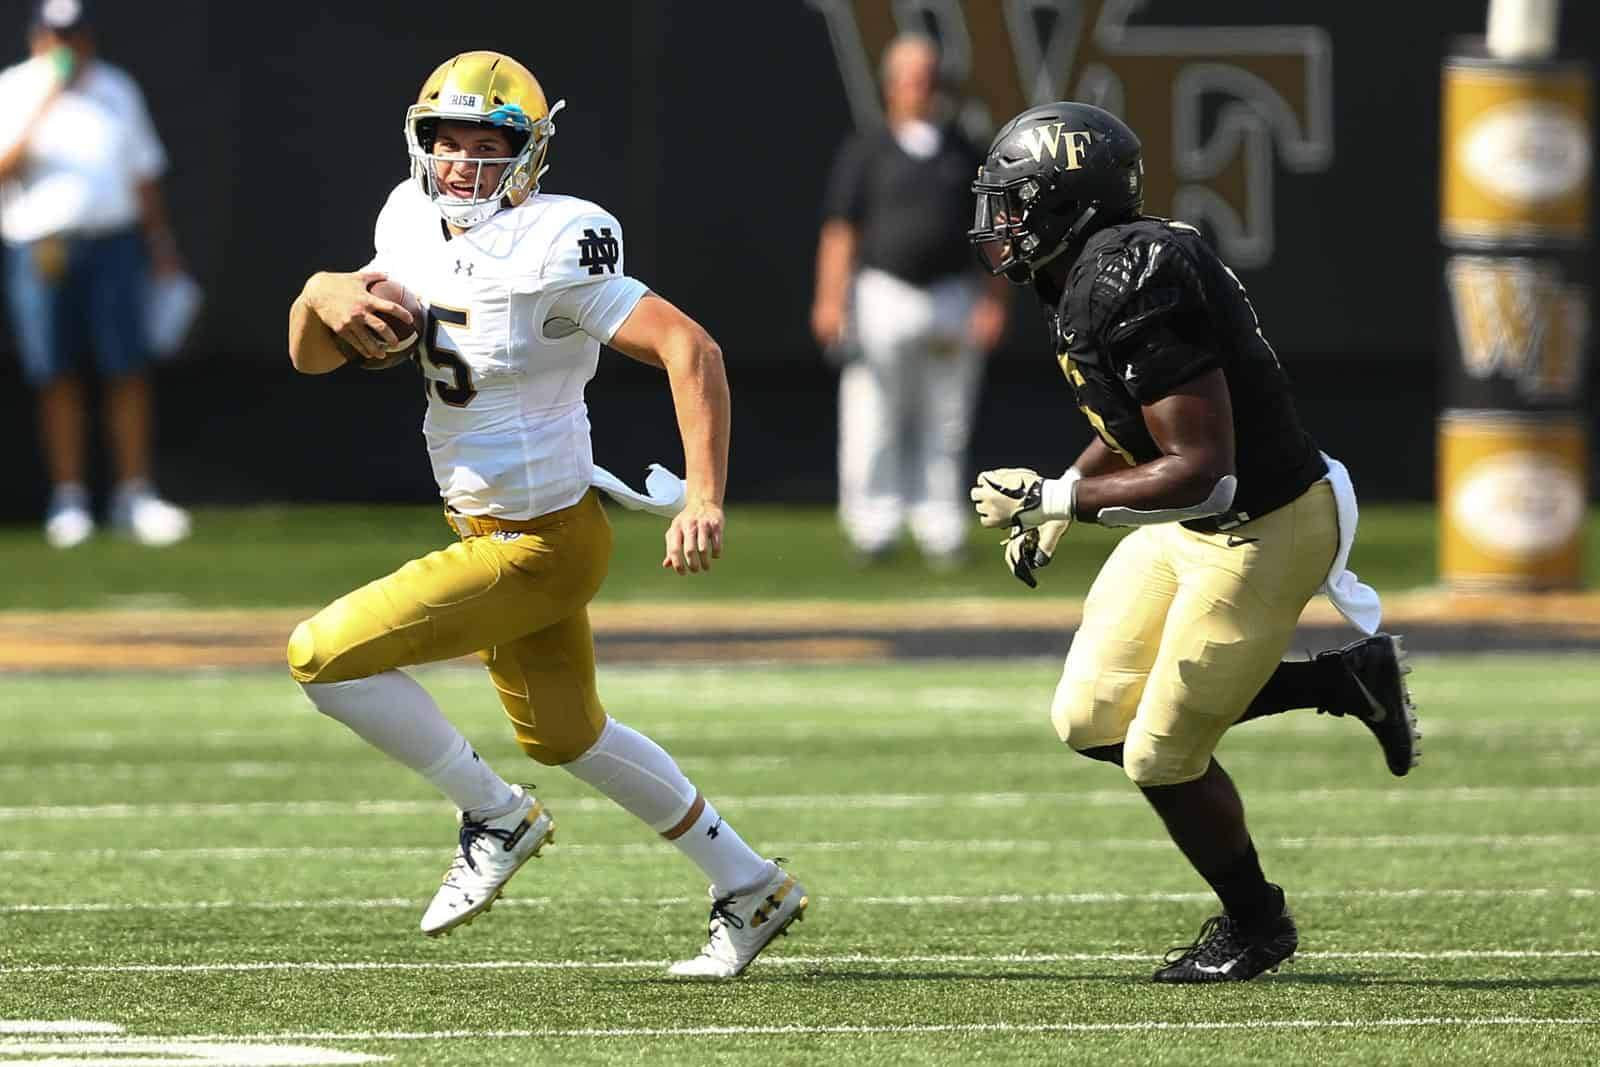 Notre Dame at Wake Forest football game postponed due to COVID-19